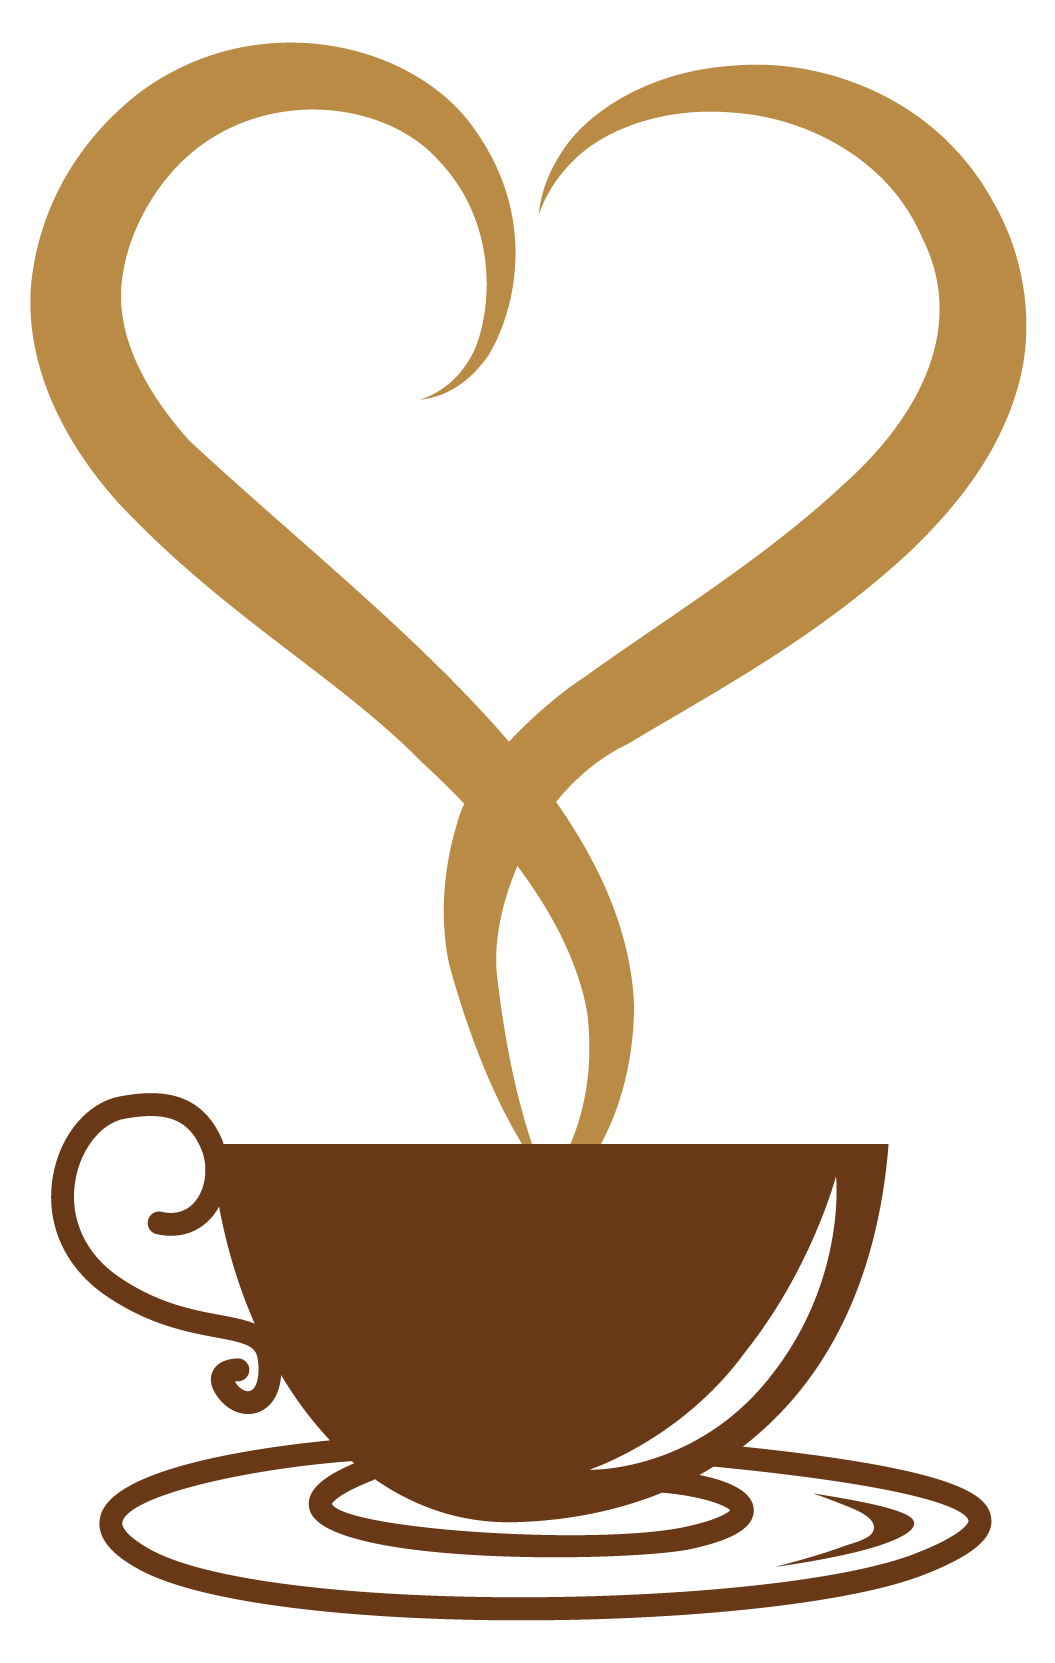 coffee cup drawing free at getdrawings com free for personal use rh getdrawings com clip art coffee mug free clip art coffee cup images